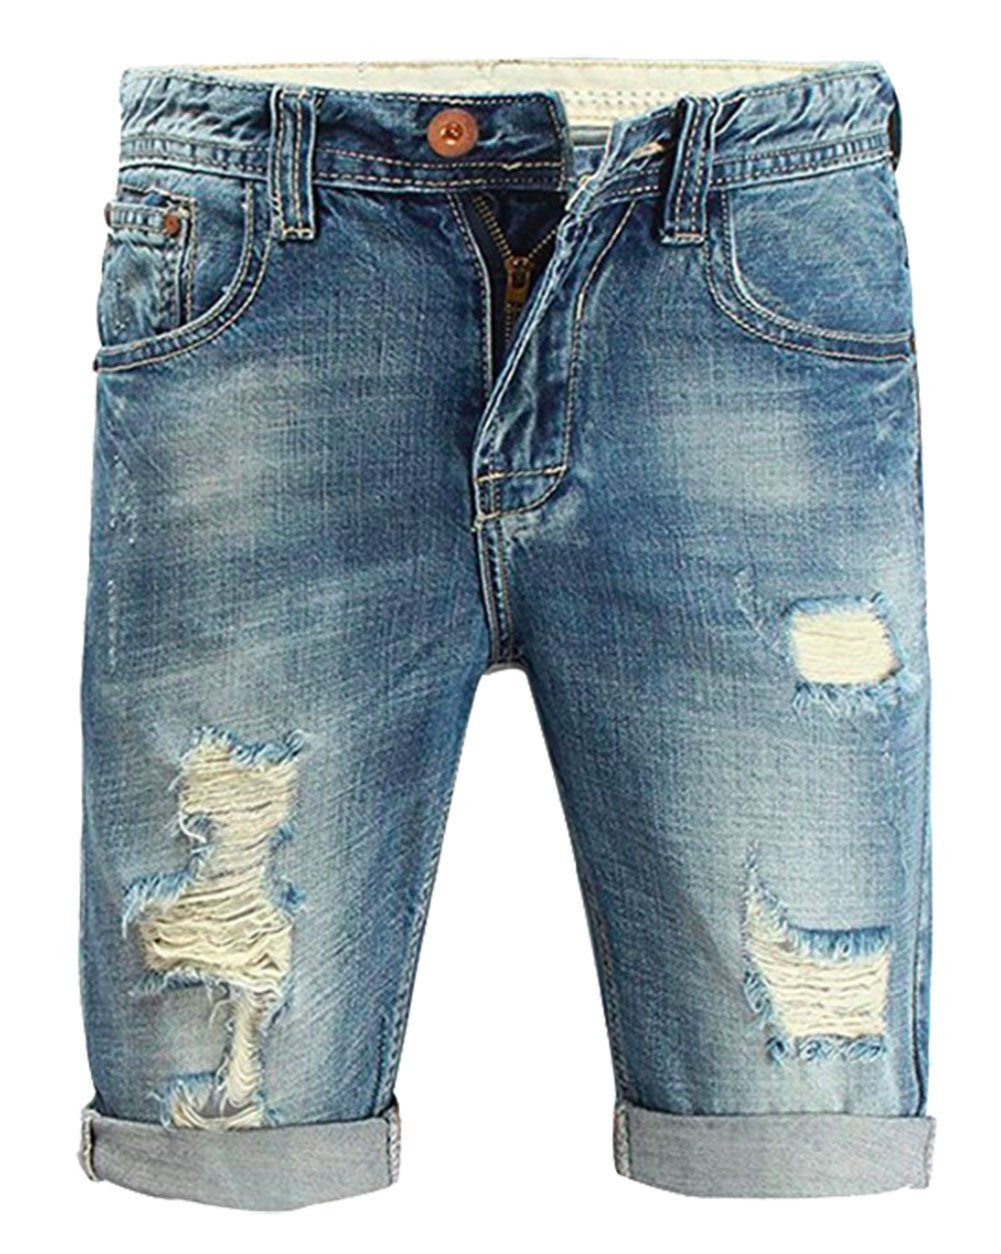 Myncoo Men's 80s Ripped Denim Shorts Distressed Jeans Light Washed (40) by Myncoo